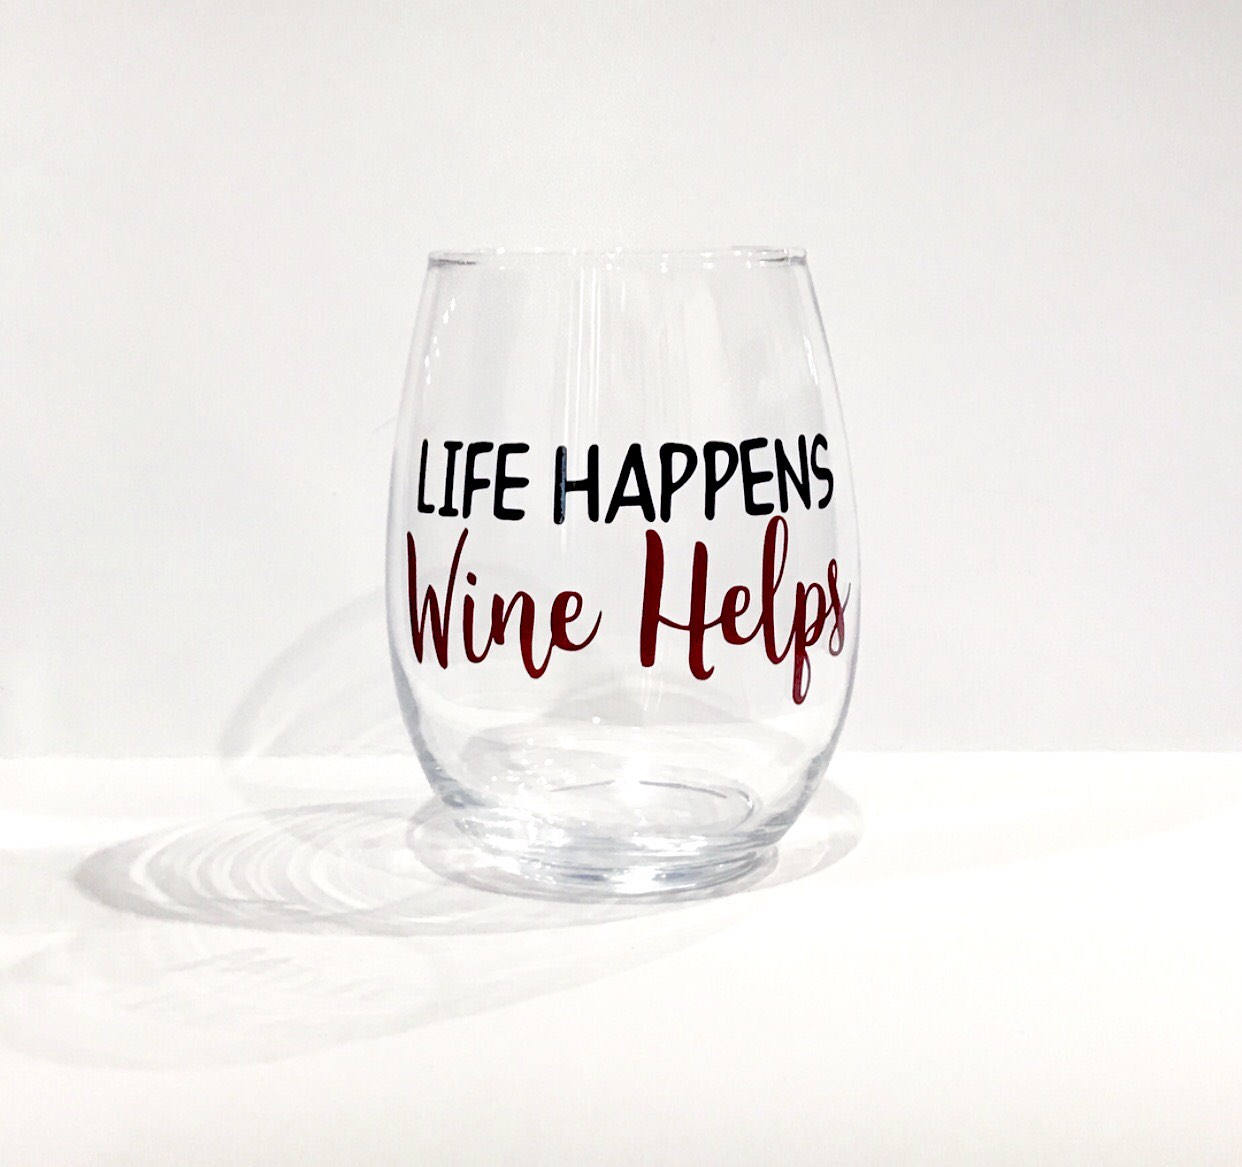 Life Happens Wine Helps stemless wine glass/ personalized glass/custom glass/ fun gift/ get well soon/ sick gift/ friend gift